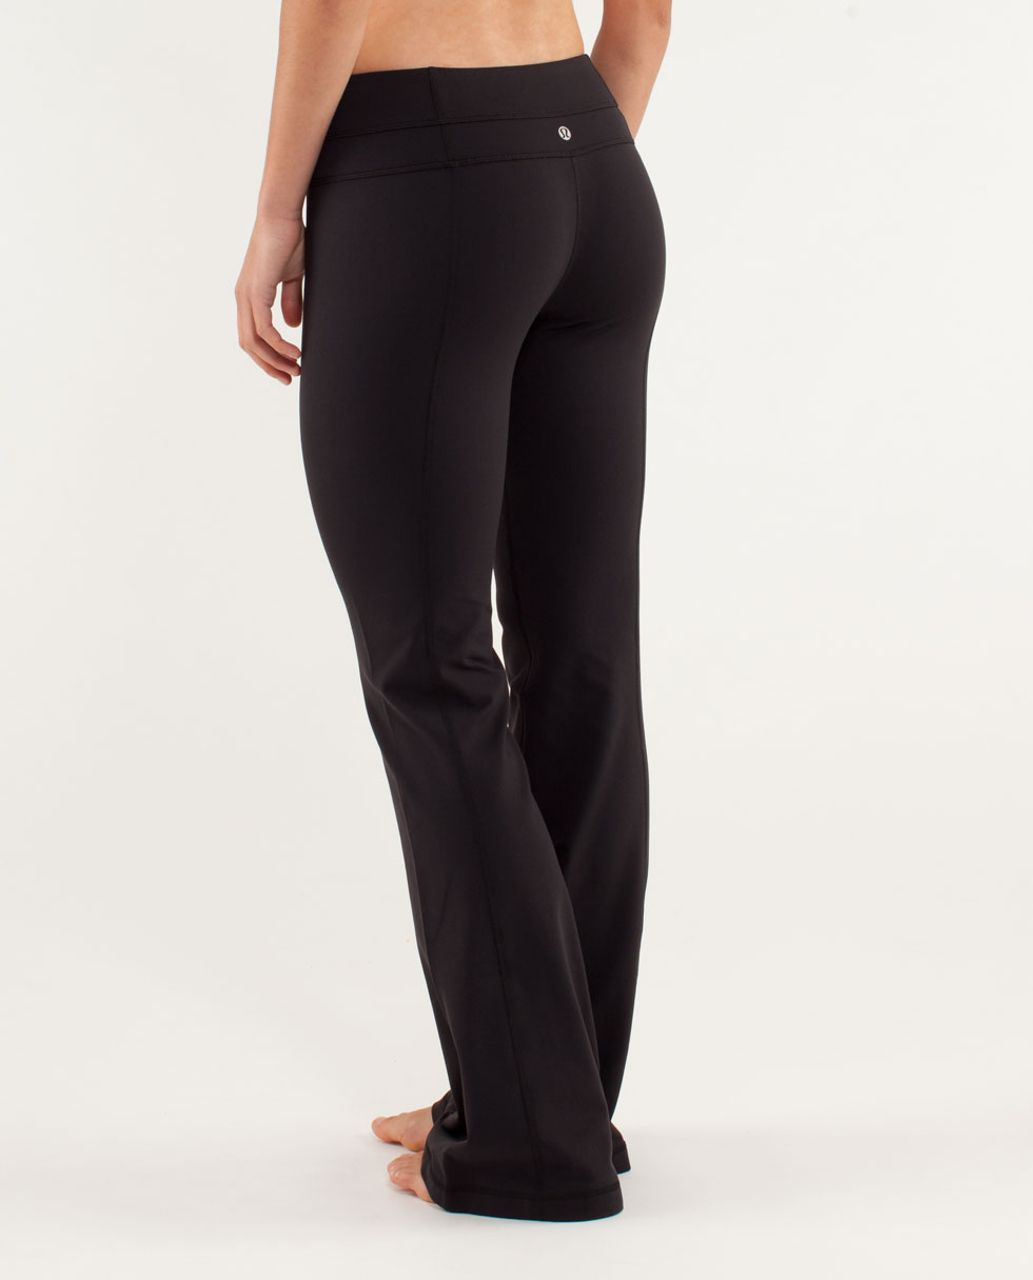 Lululemon Groove Pant *Brushed Slim (Tall) - Black